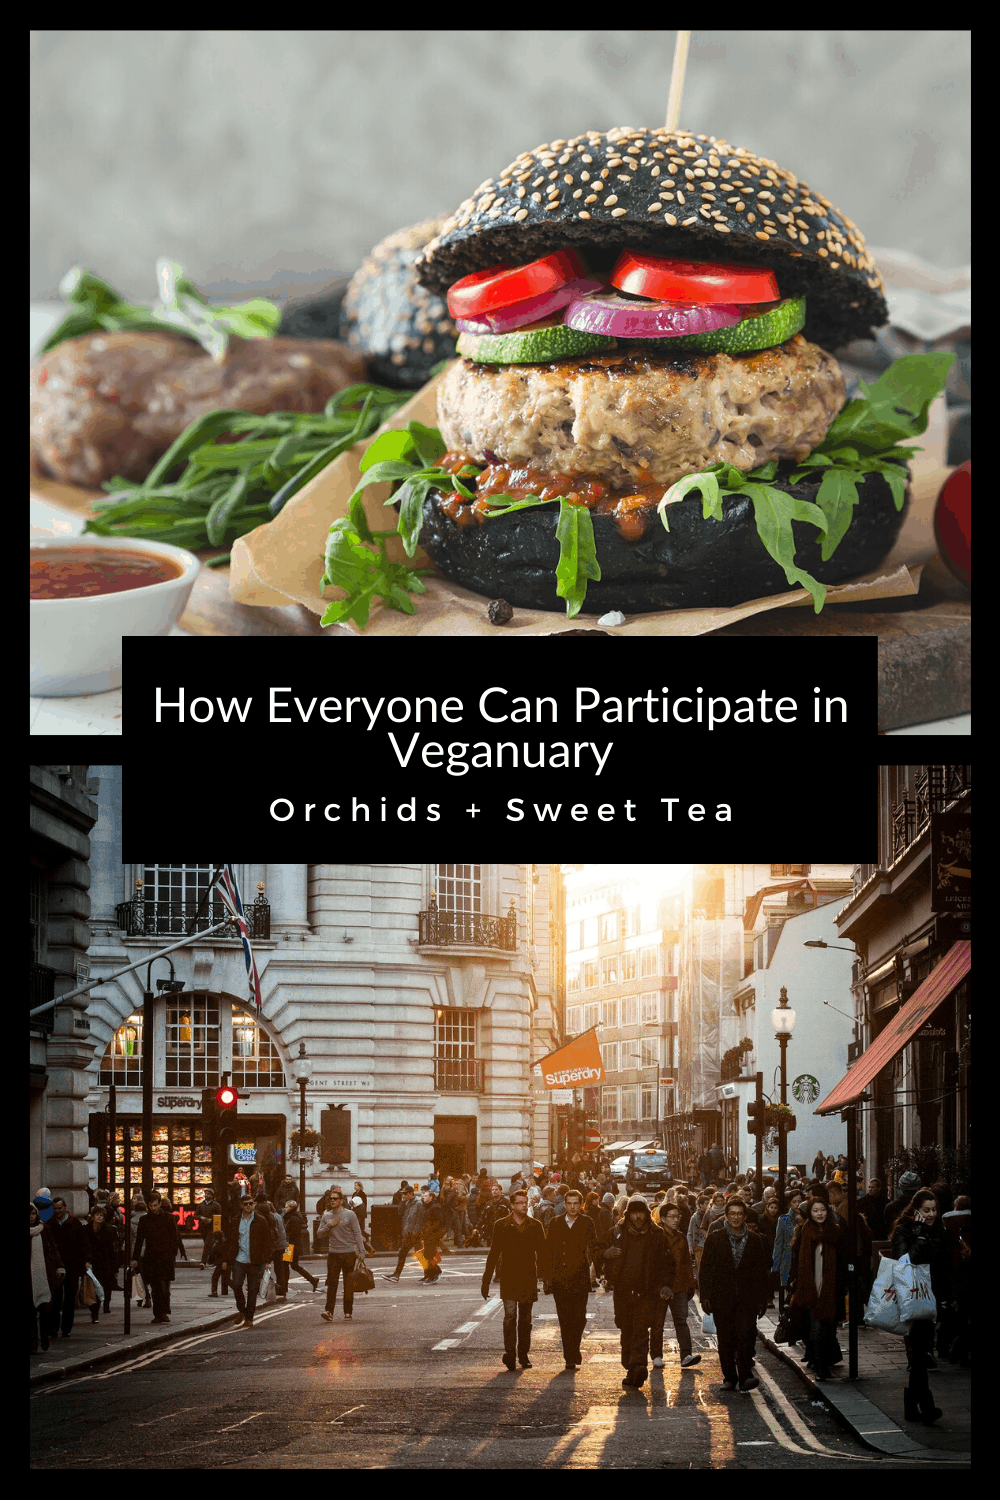 How Everyone Can Participate in Veganuary